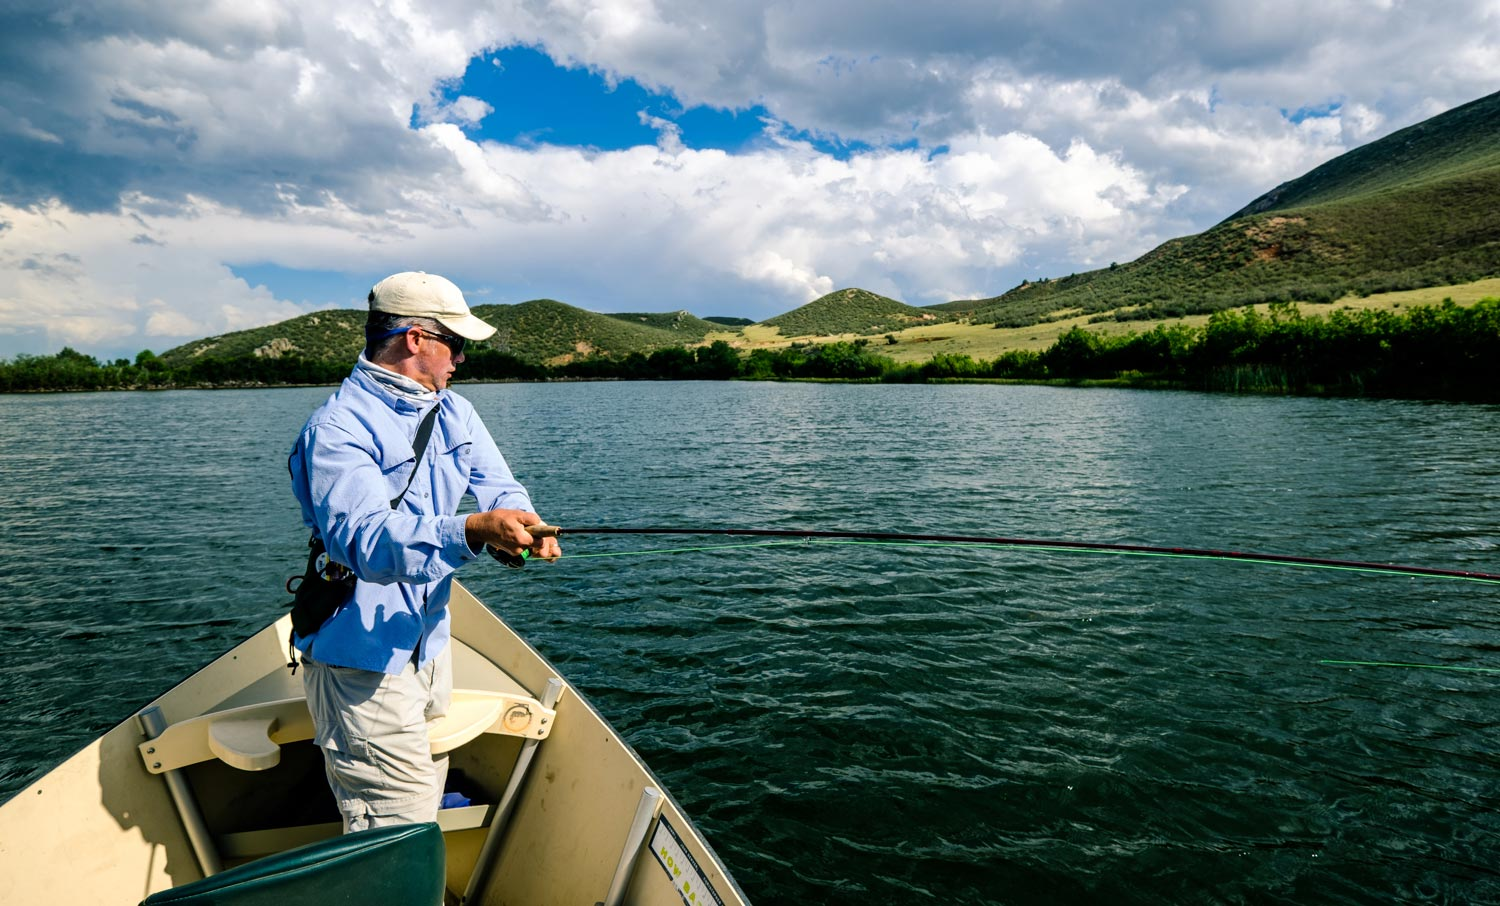 Blog fly fishing gink and gasoline how to fly fish for Plenty of fish cheyenne